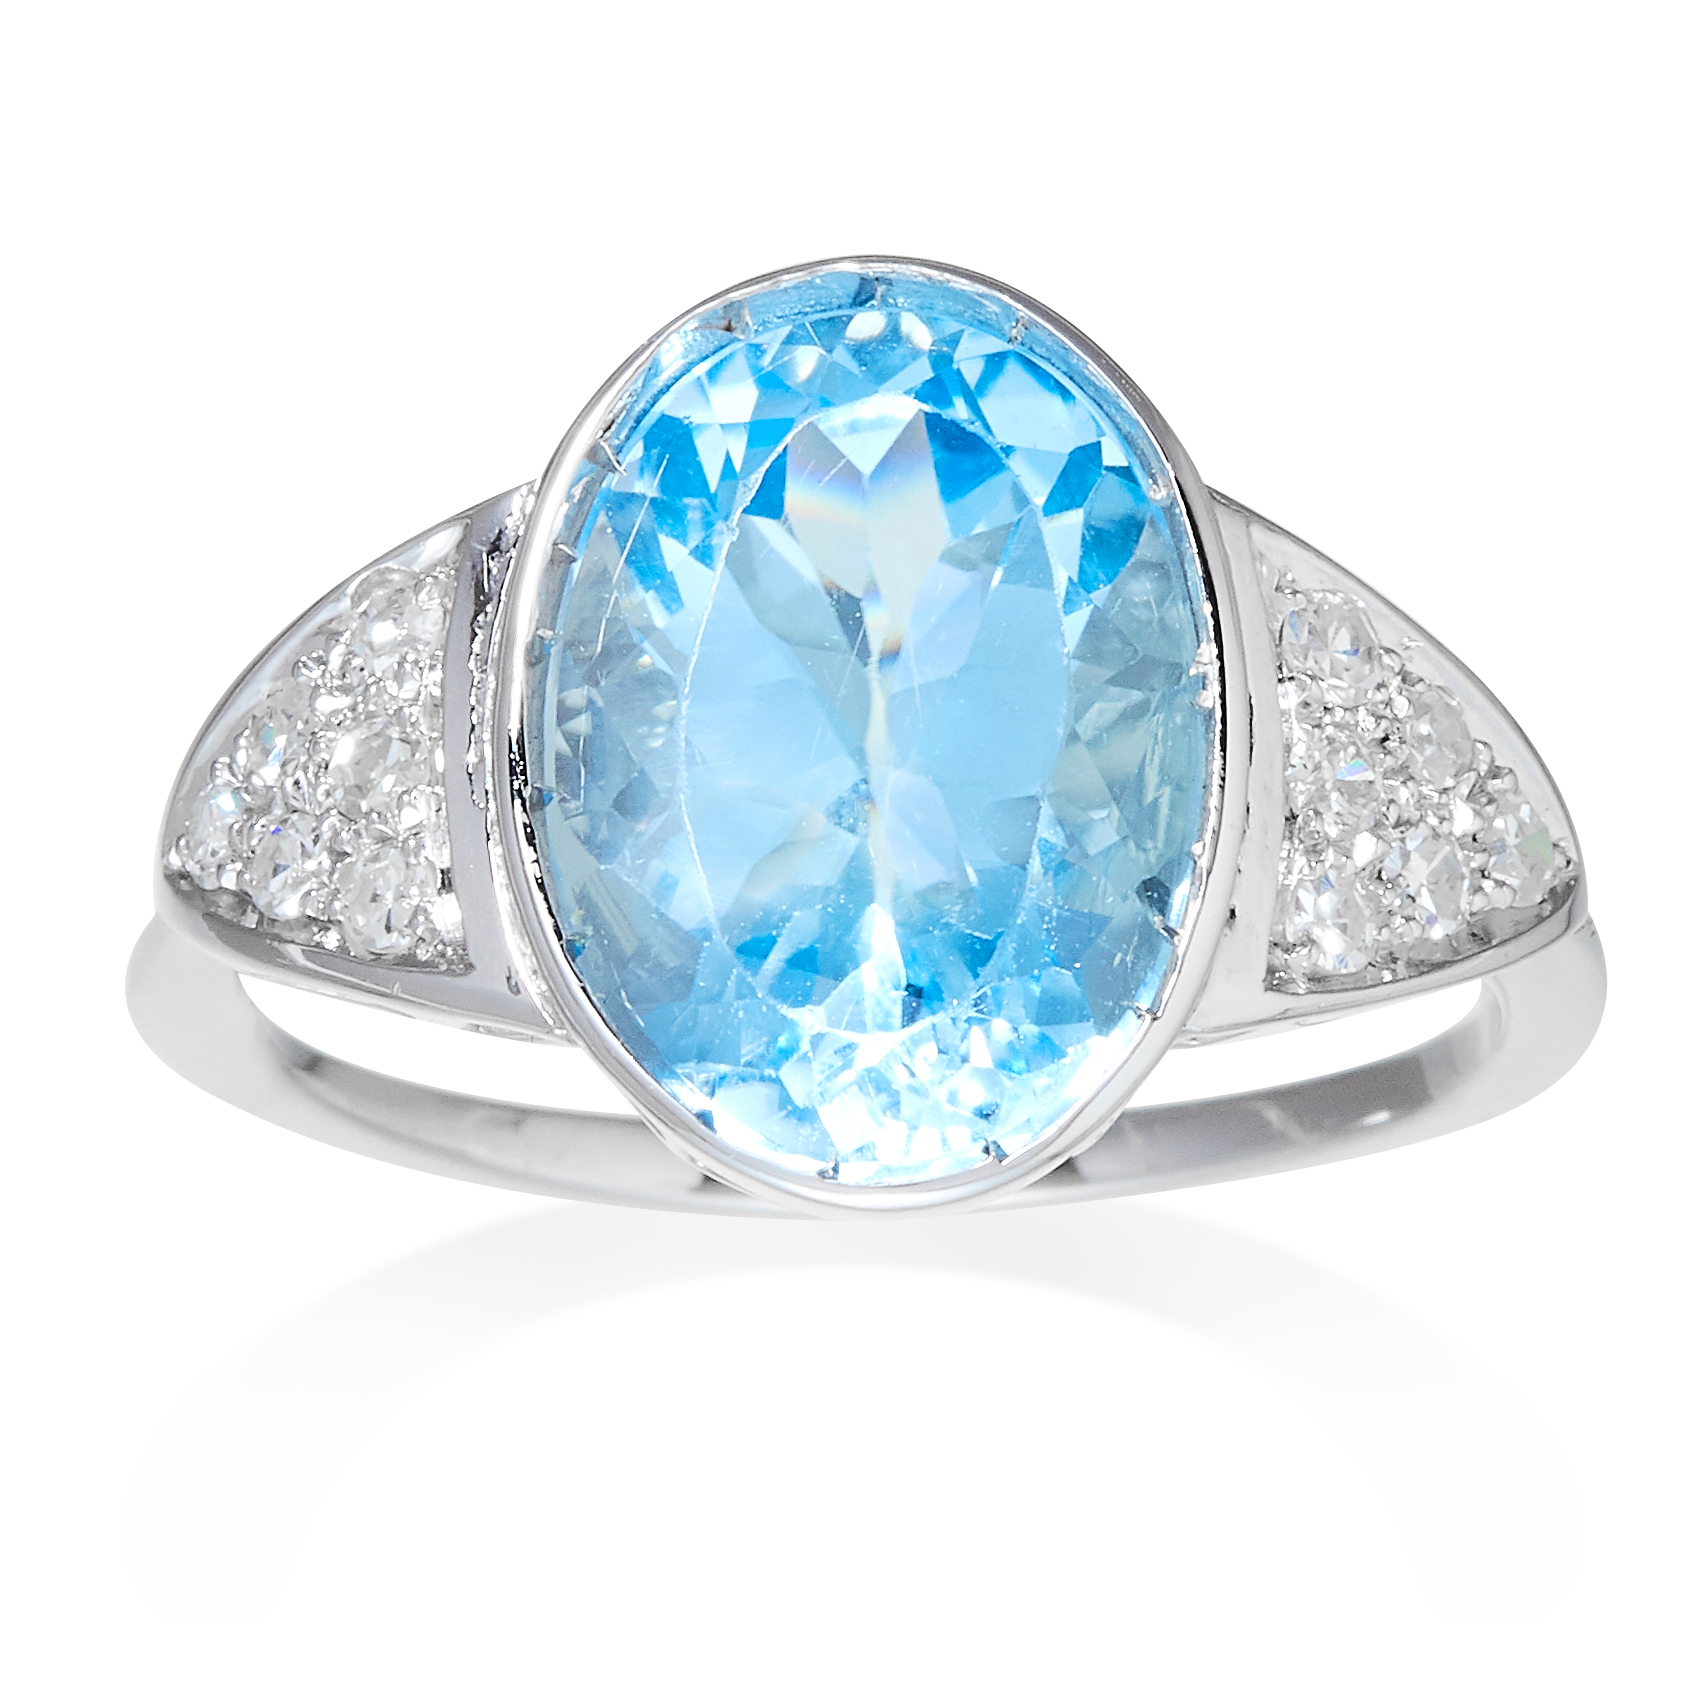 Los 23 - AN AQUAMARINE AND DIAMOND RING in platinum or white gold, the oval cut aquamarine of 6.09 carats